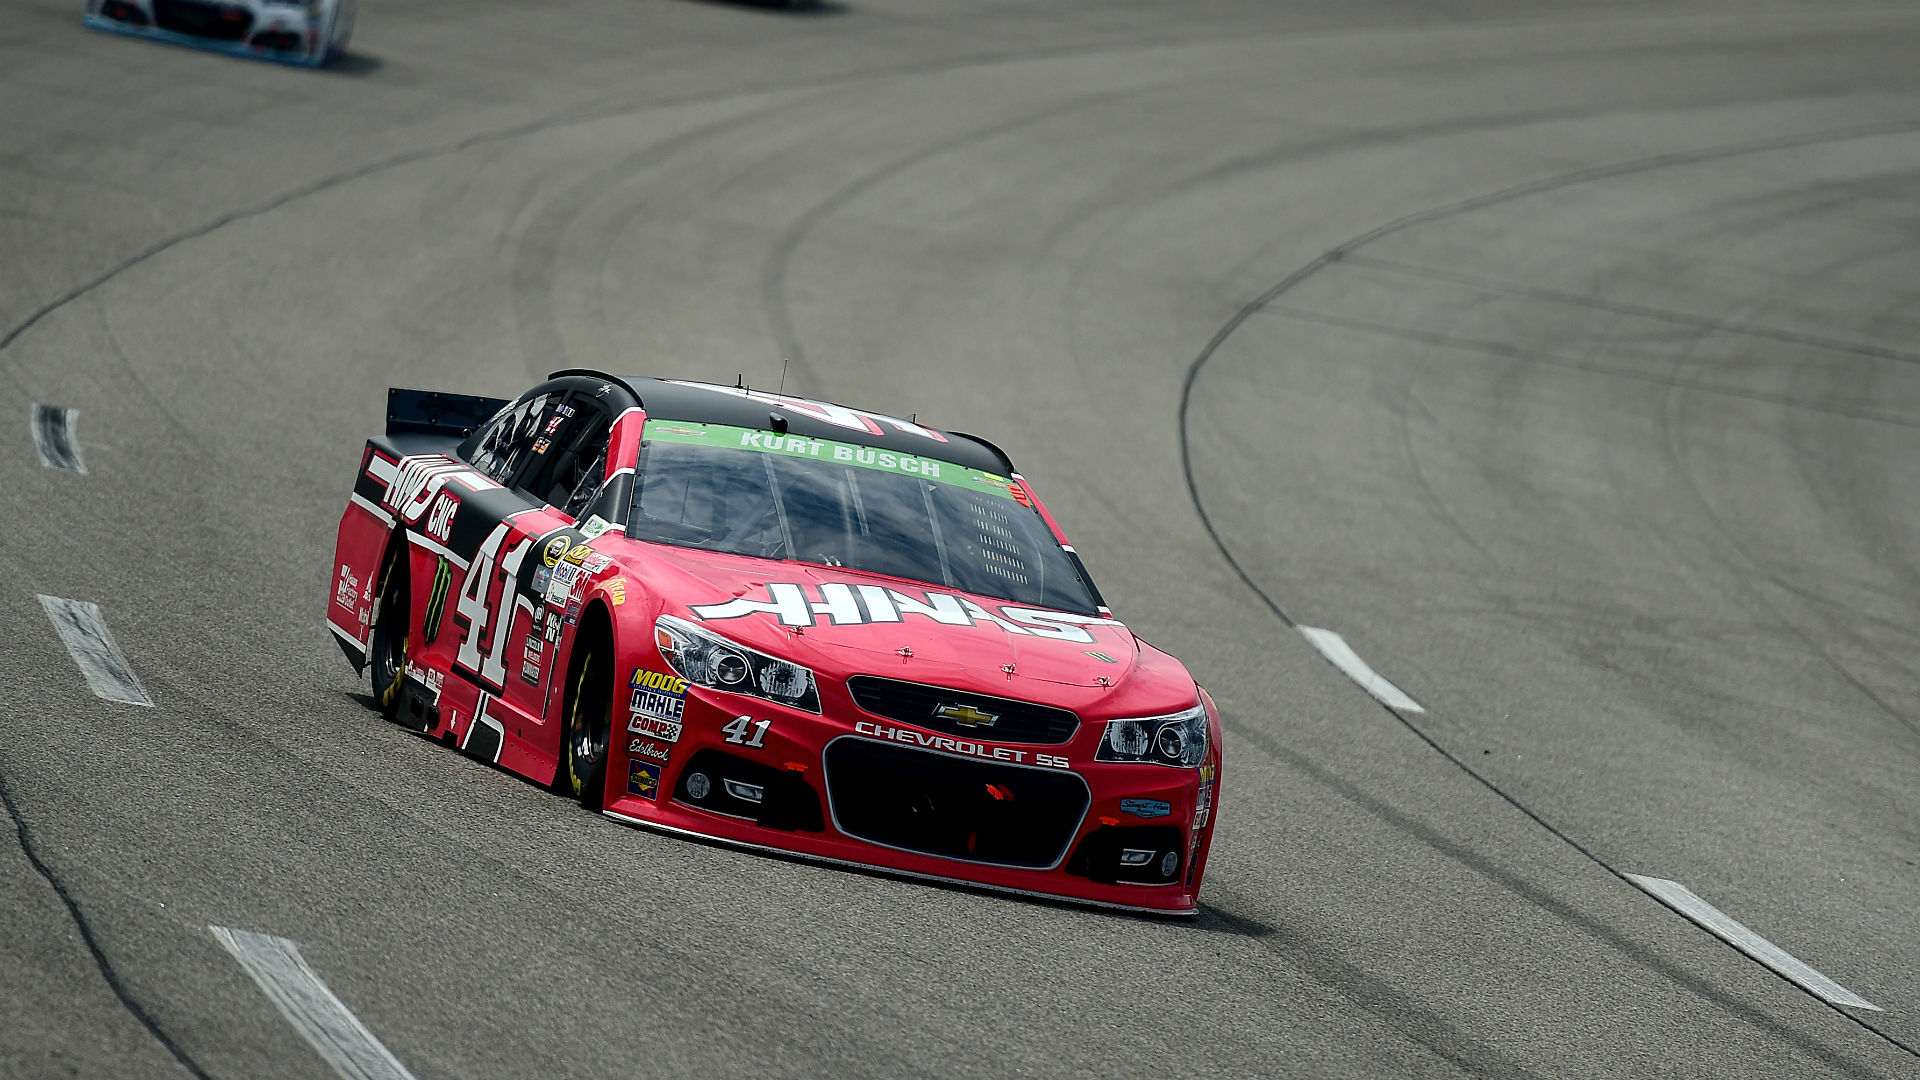 Kurt Busch dominant in victory at Richmond